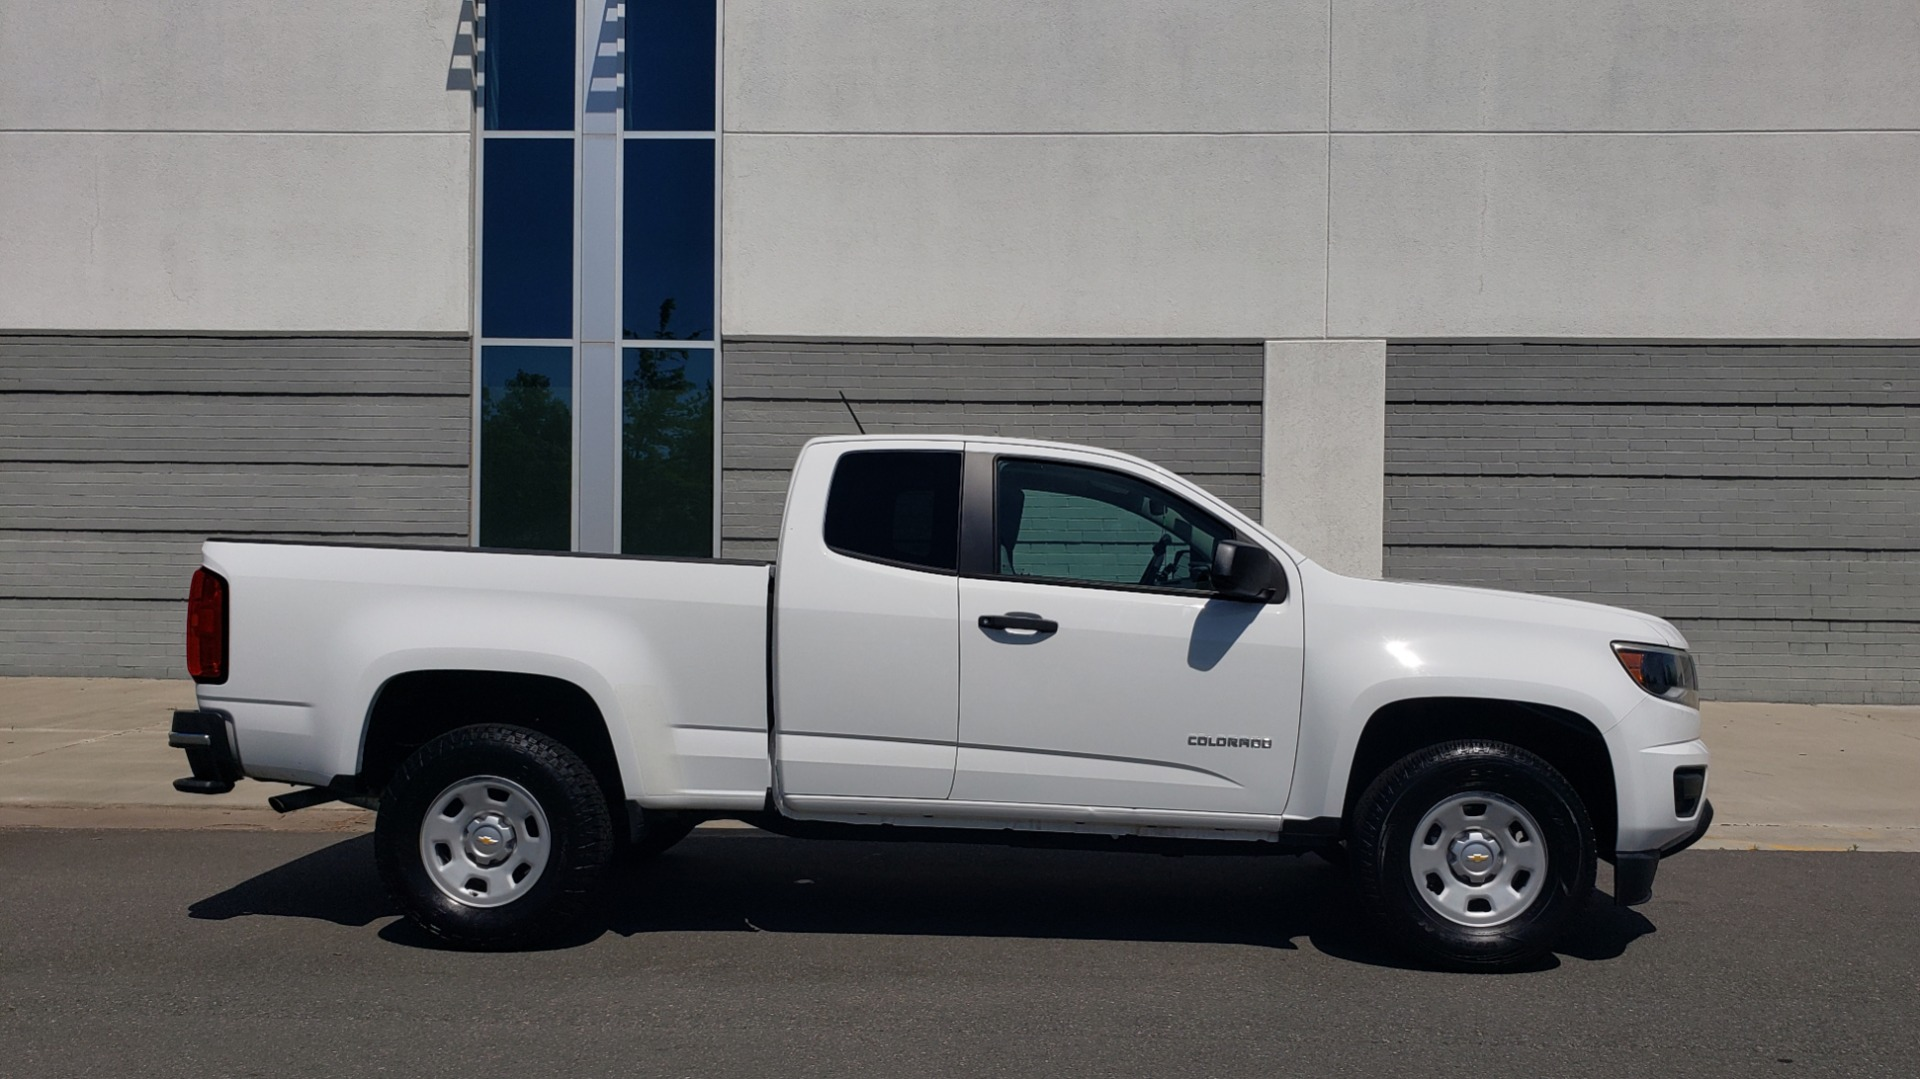 Used 2016 Chevrolet COLORADO 2WD WT / EXT CAB / 128.3 WB / 4-CYL / 6-SPD AUTO / REARVIEW for sale Sold at Formula Imports in Charlotte NC 28227 7